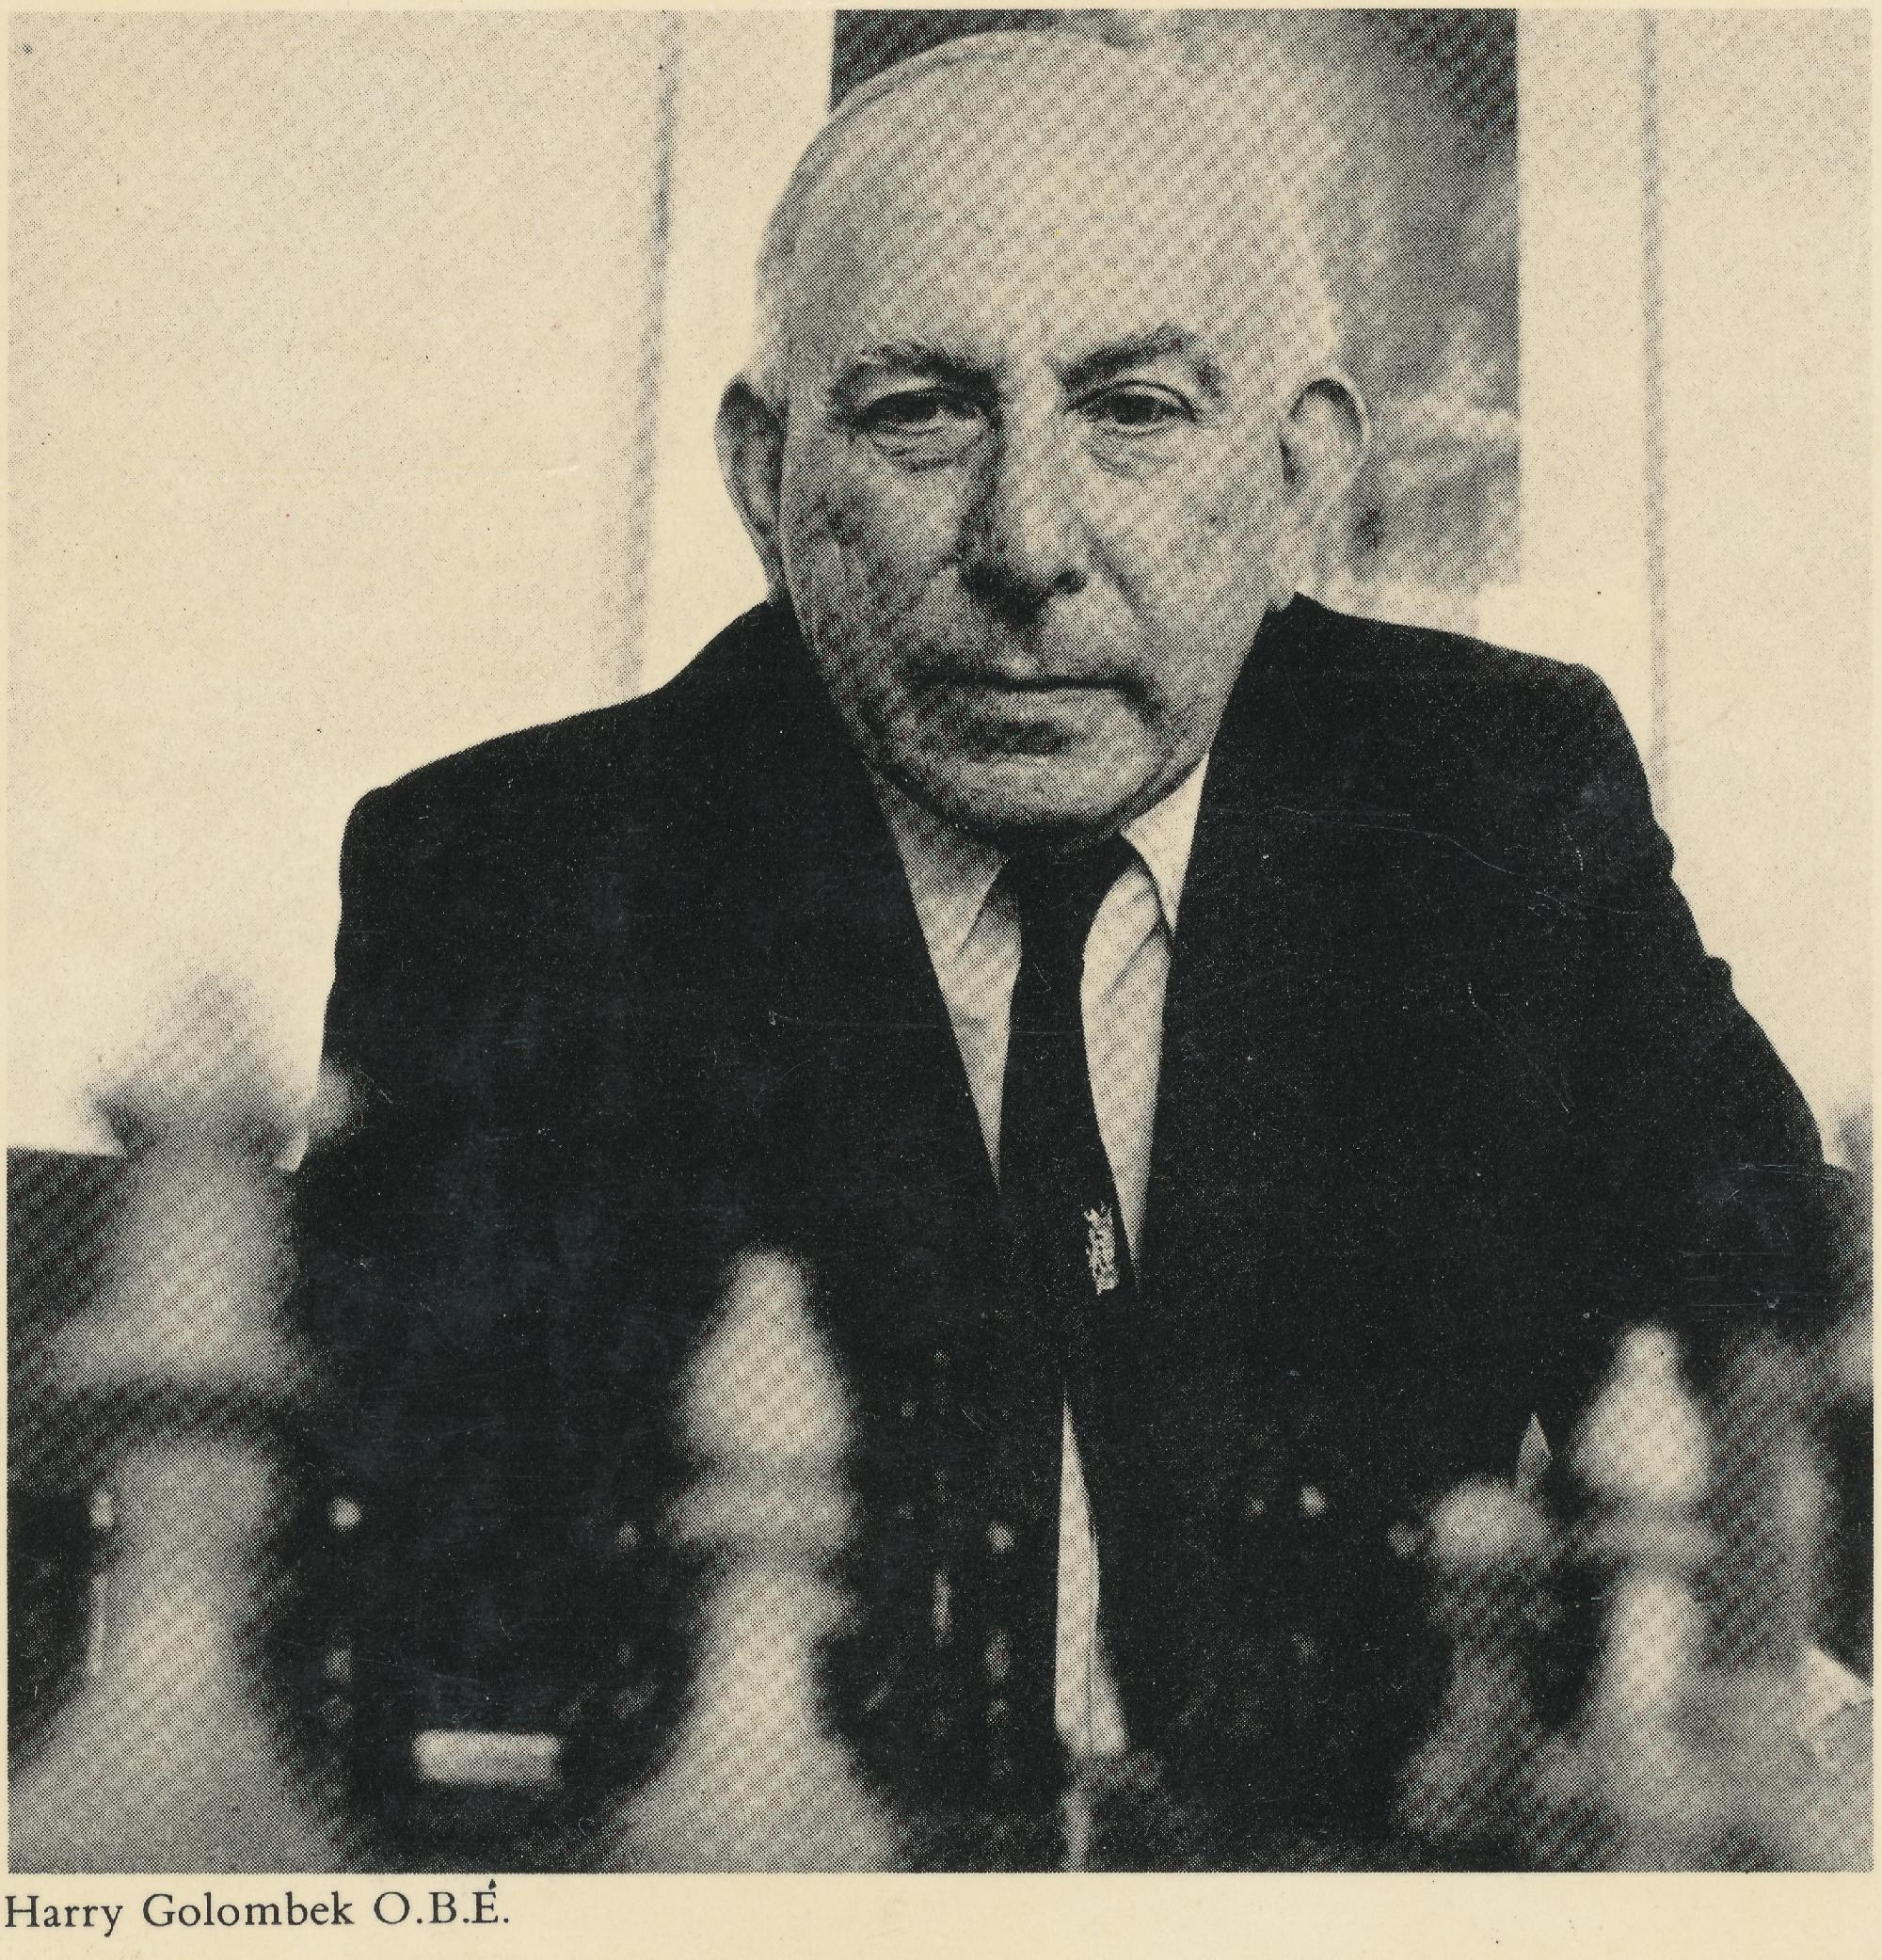 Harry Golombek, OBE (from the rear cover of A History of Chess)